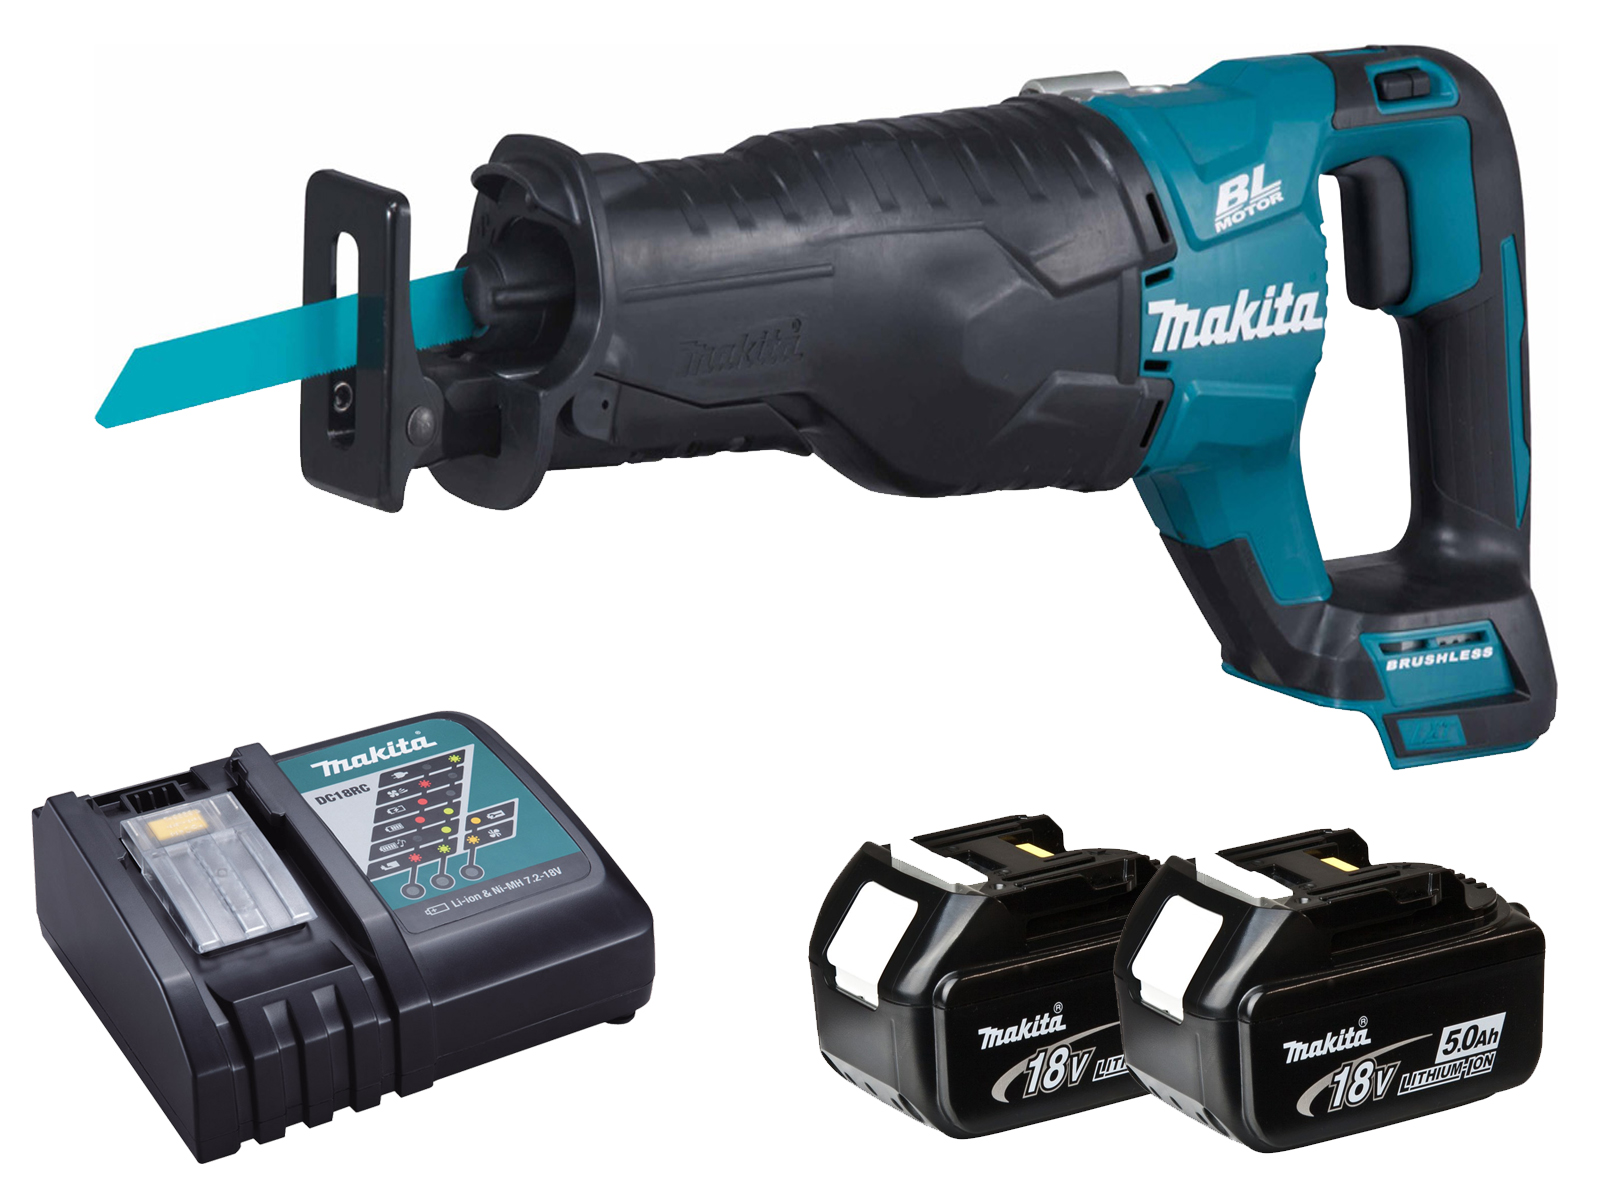 Makita DJR187 18V LXT Brushless Reciprocating Saw - 5.0ah Pack